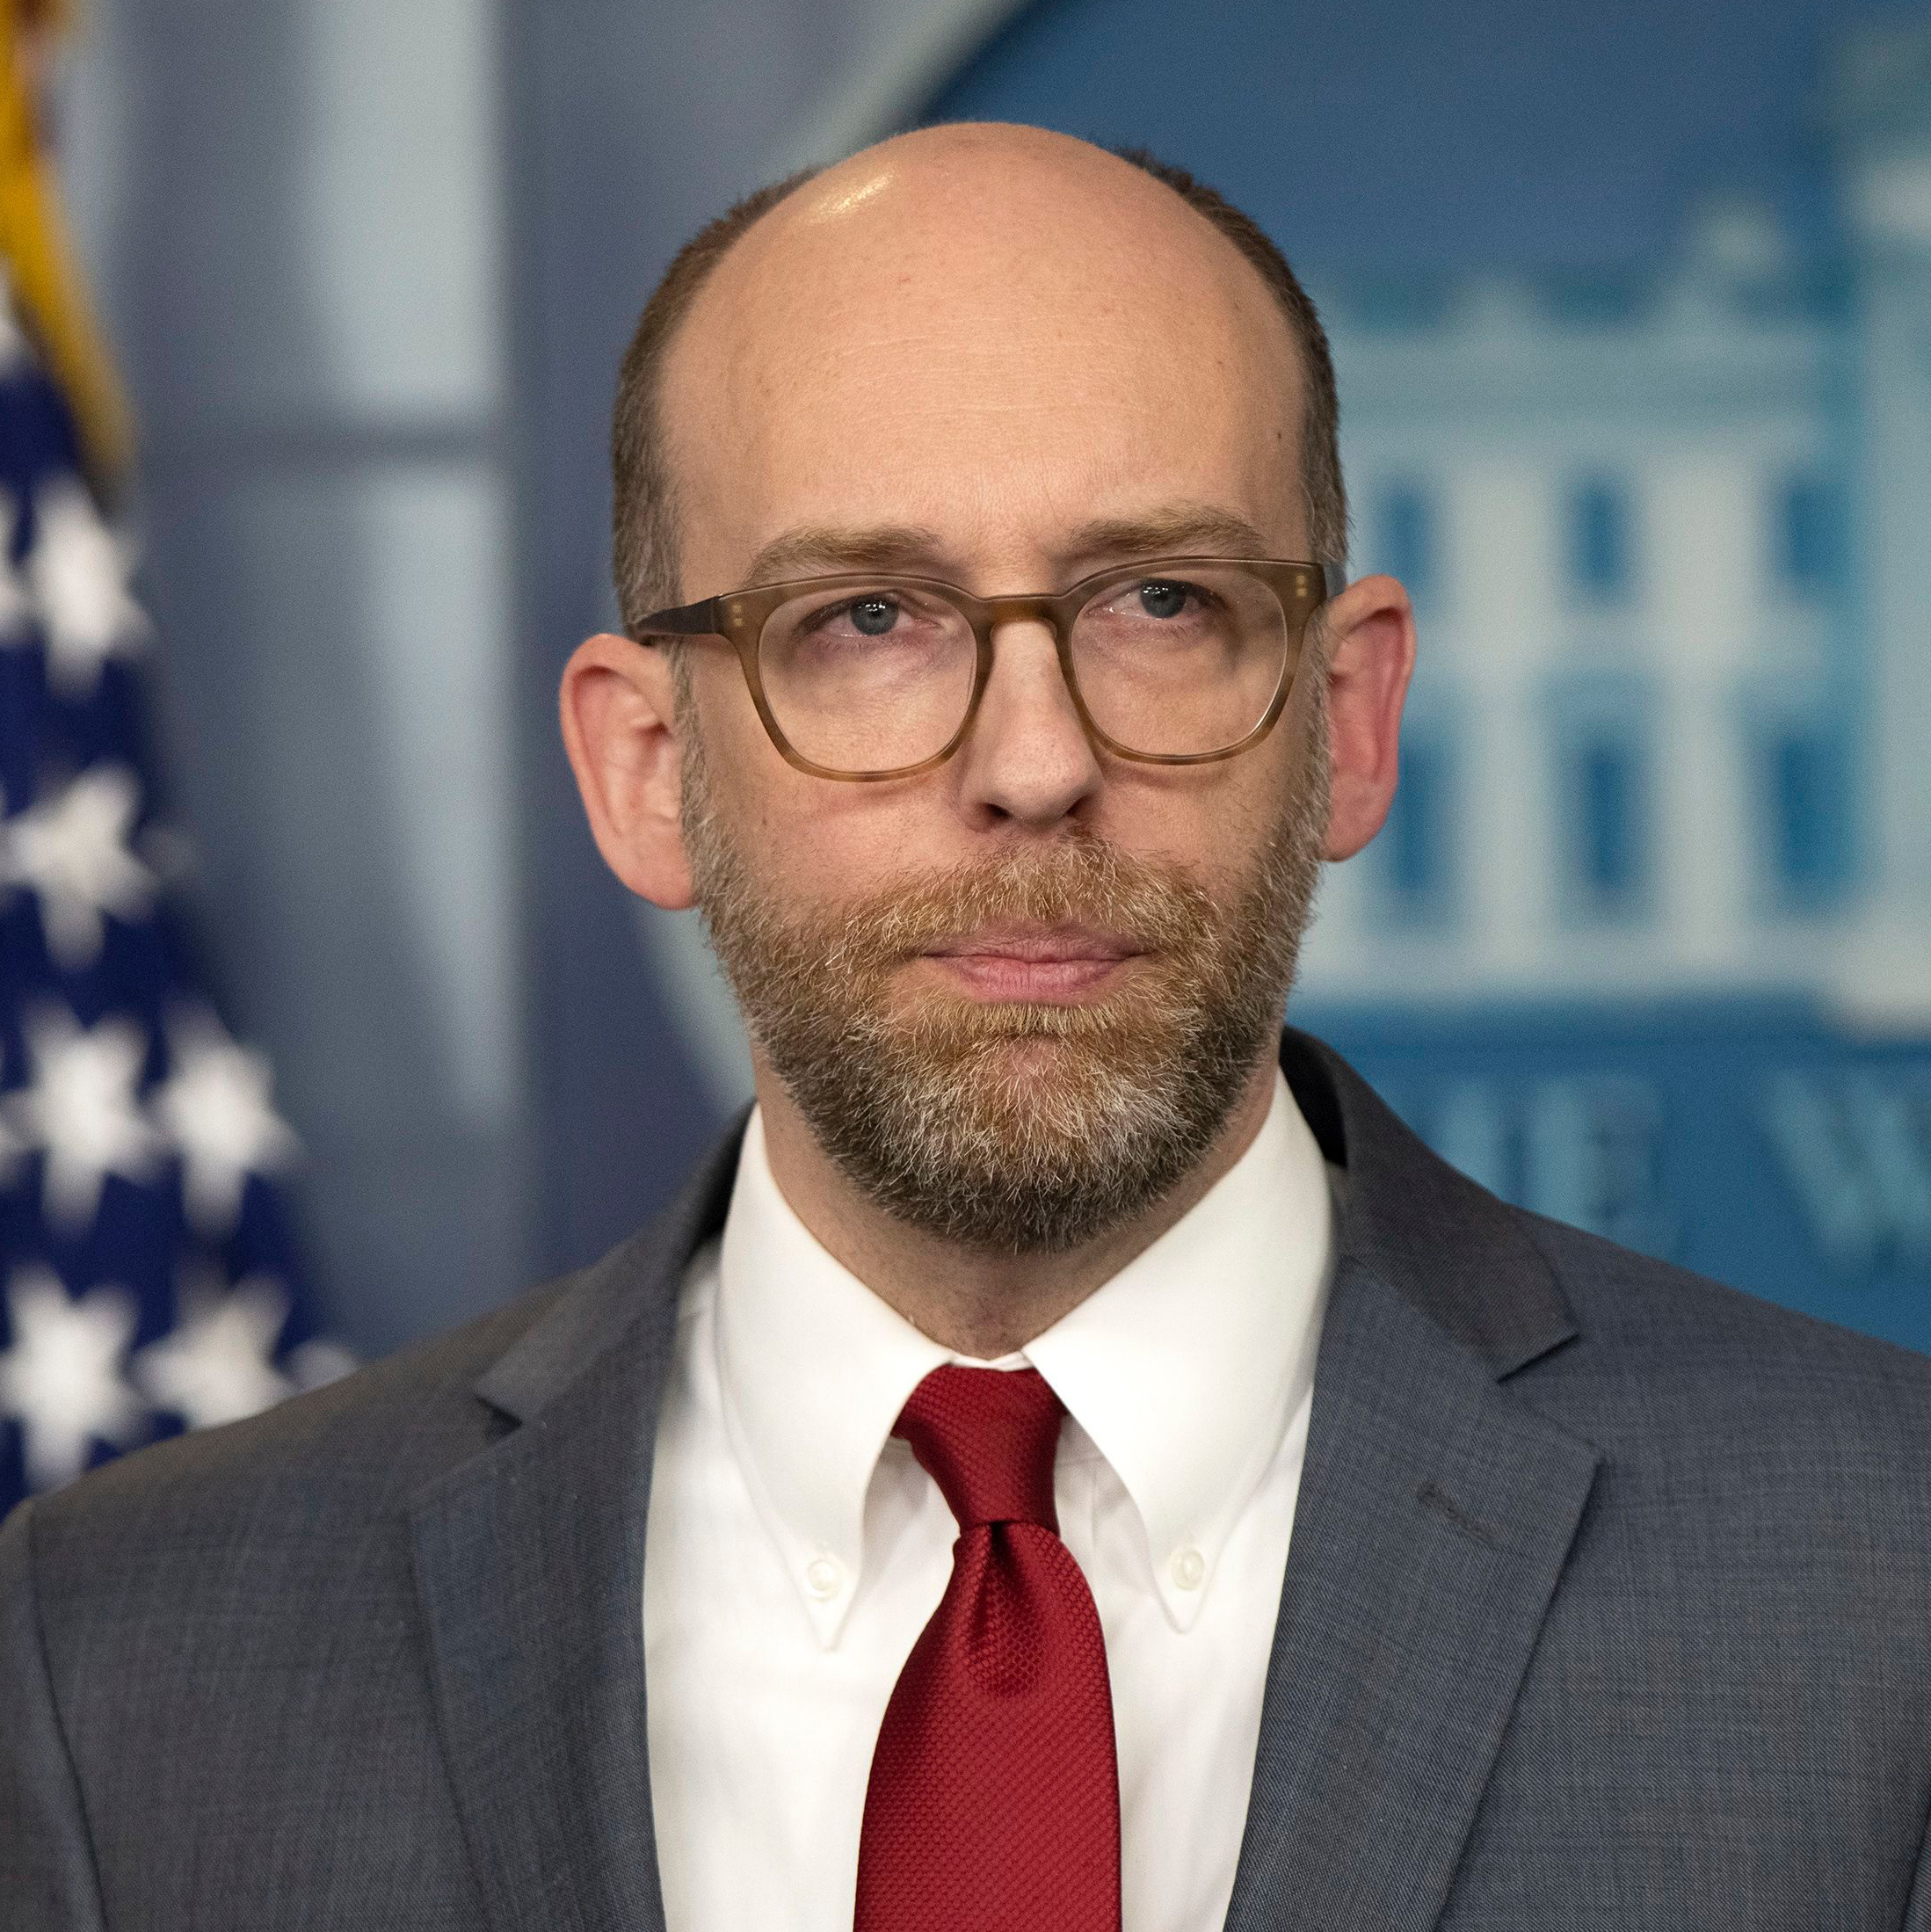 Office of Management and Budget (OMB) Acting Director Russell Vought briefs the media in the White House Brady Press Briefing RoomWhite House press briefing, Washington DC, USA - 11 Mar 2019